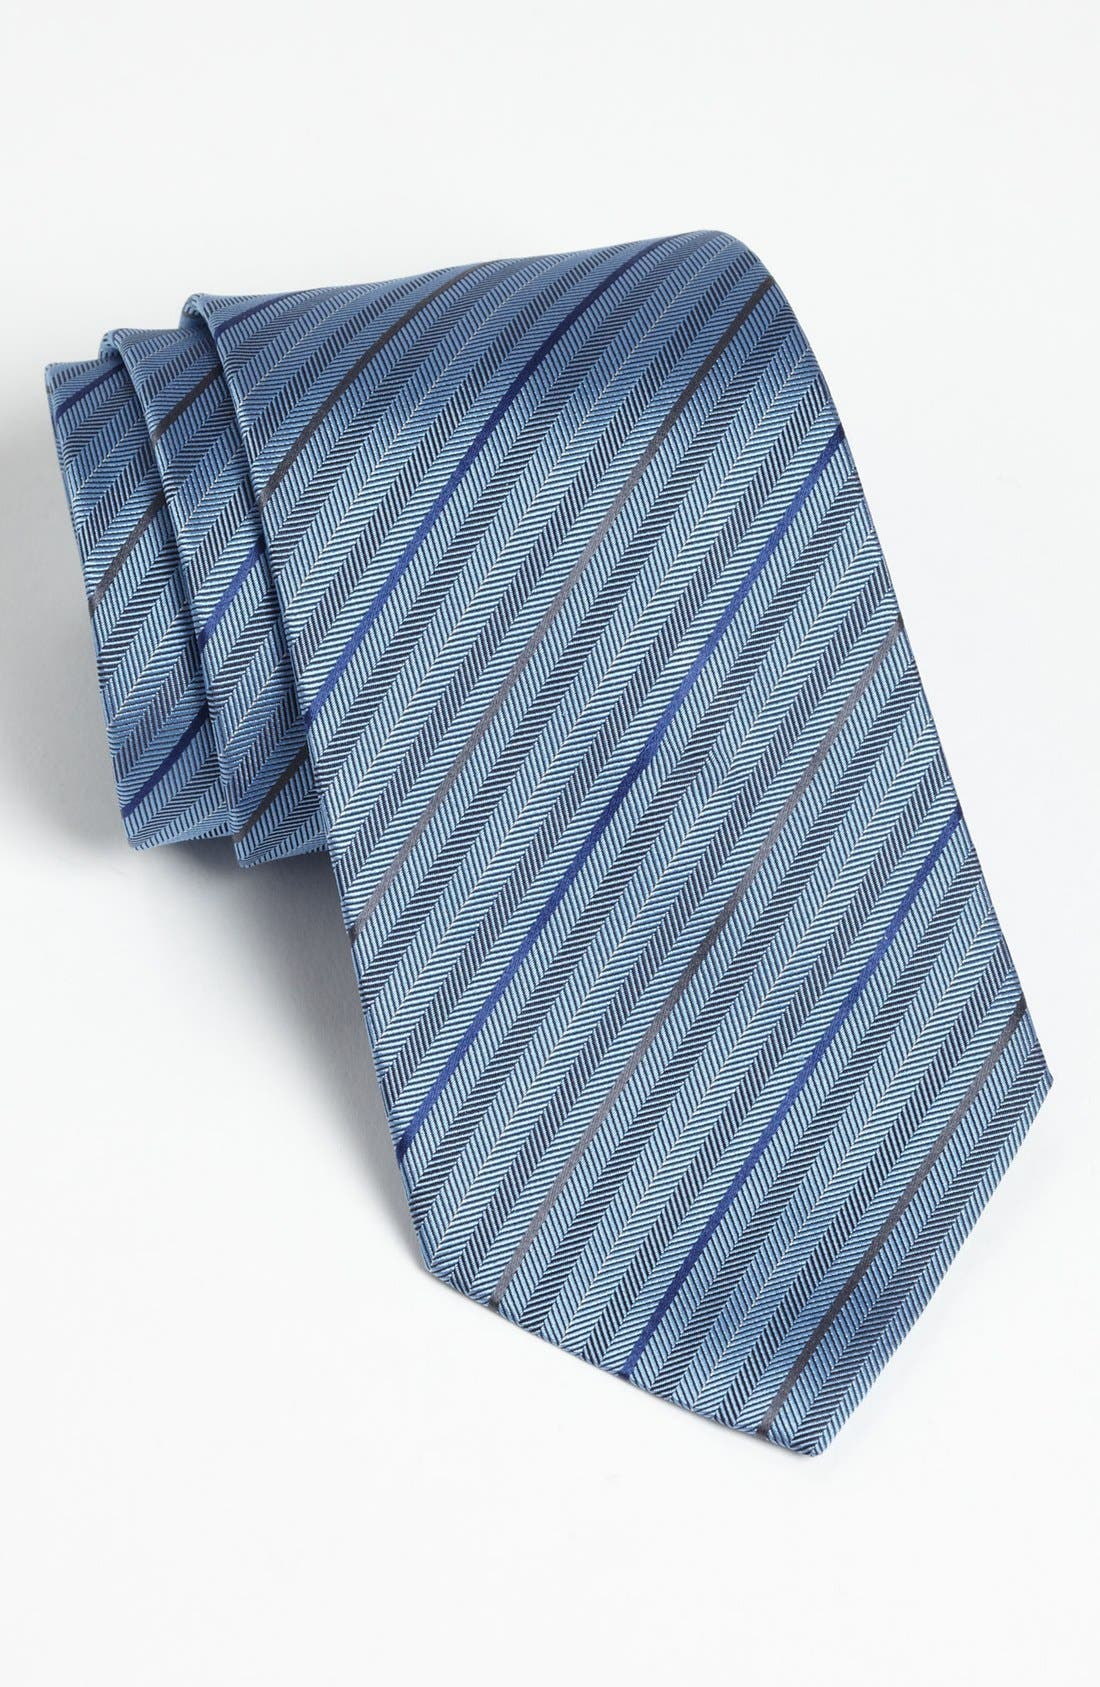 Alternate Image 1 Selected - Z Zegna Herringbone Stripe Woven Silk Tie